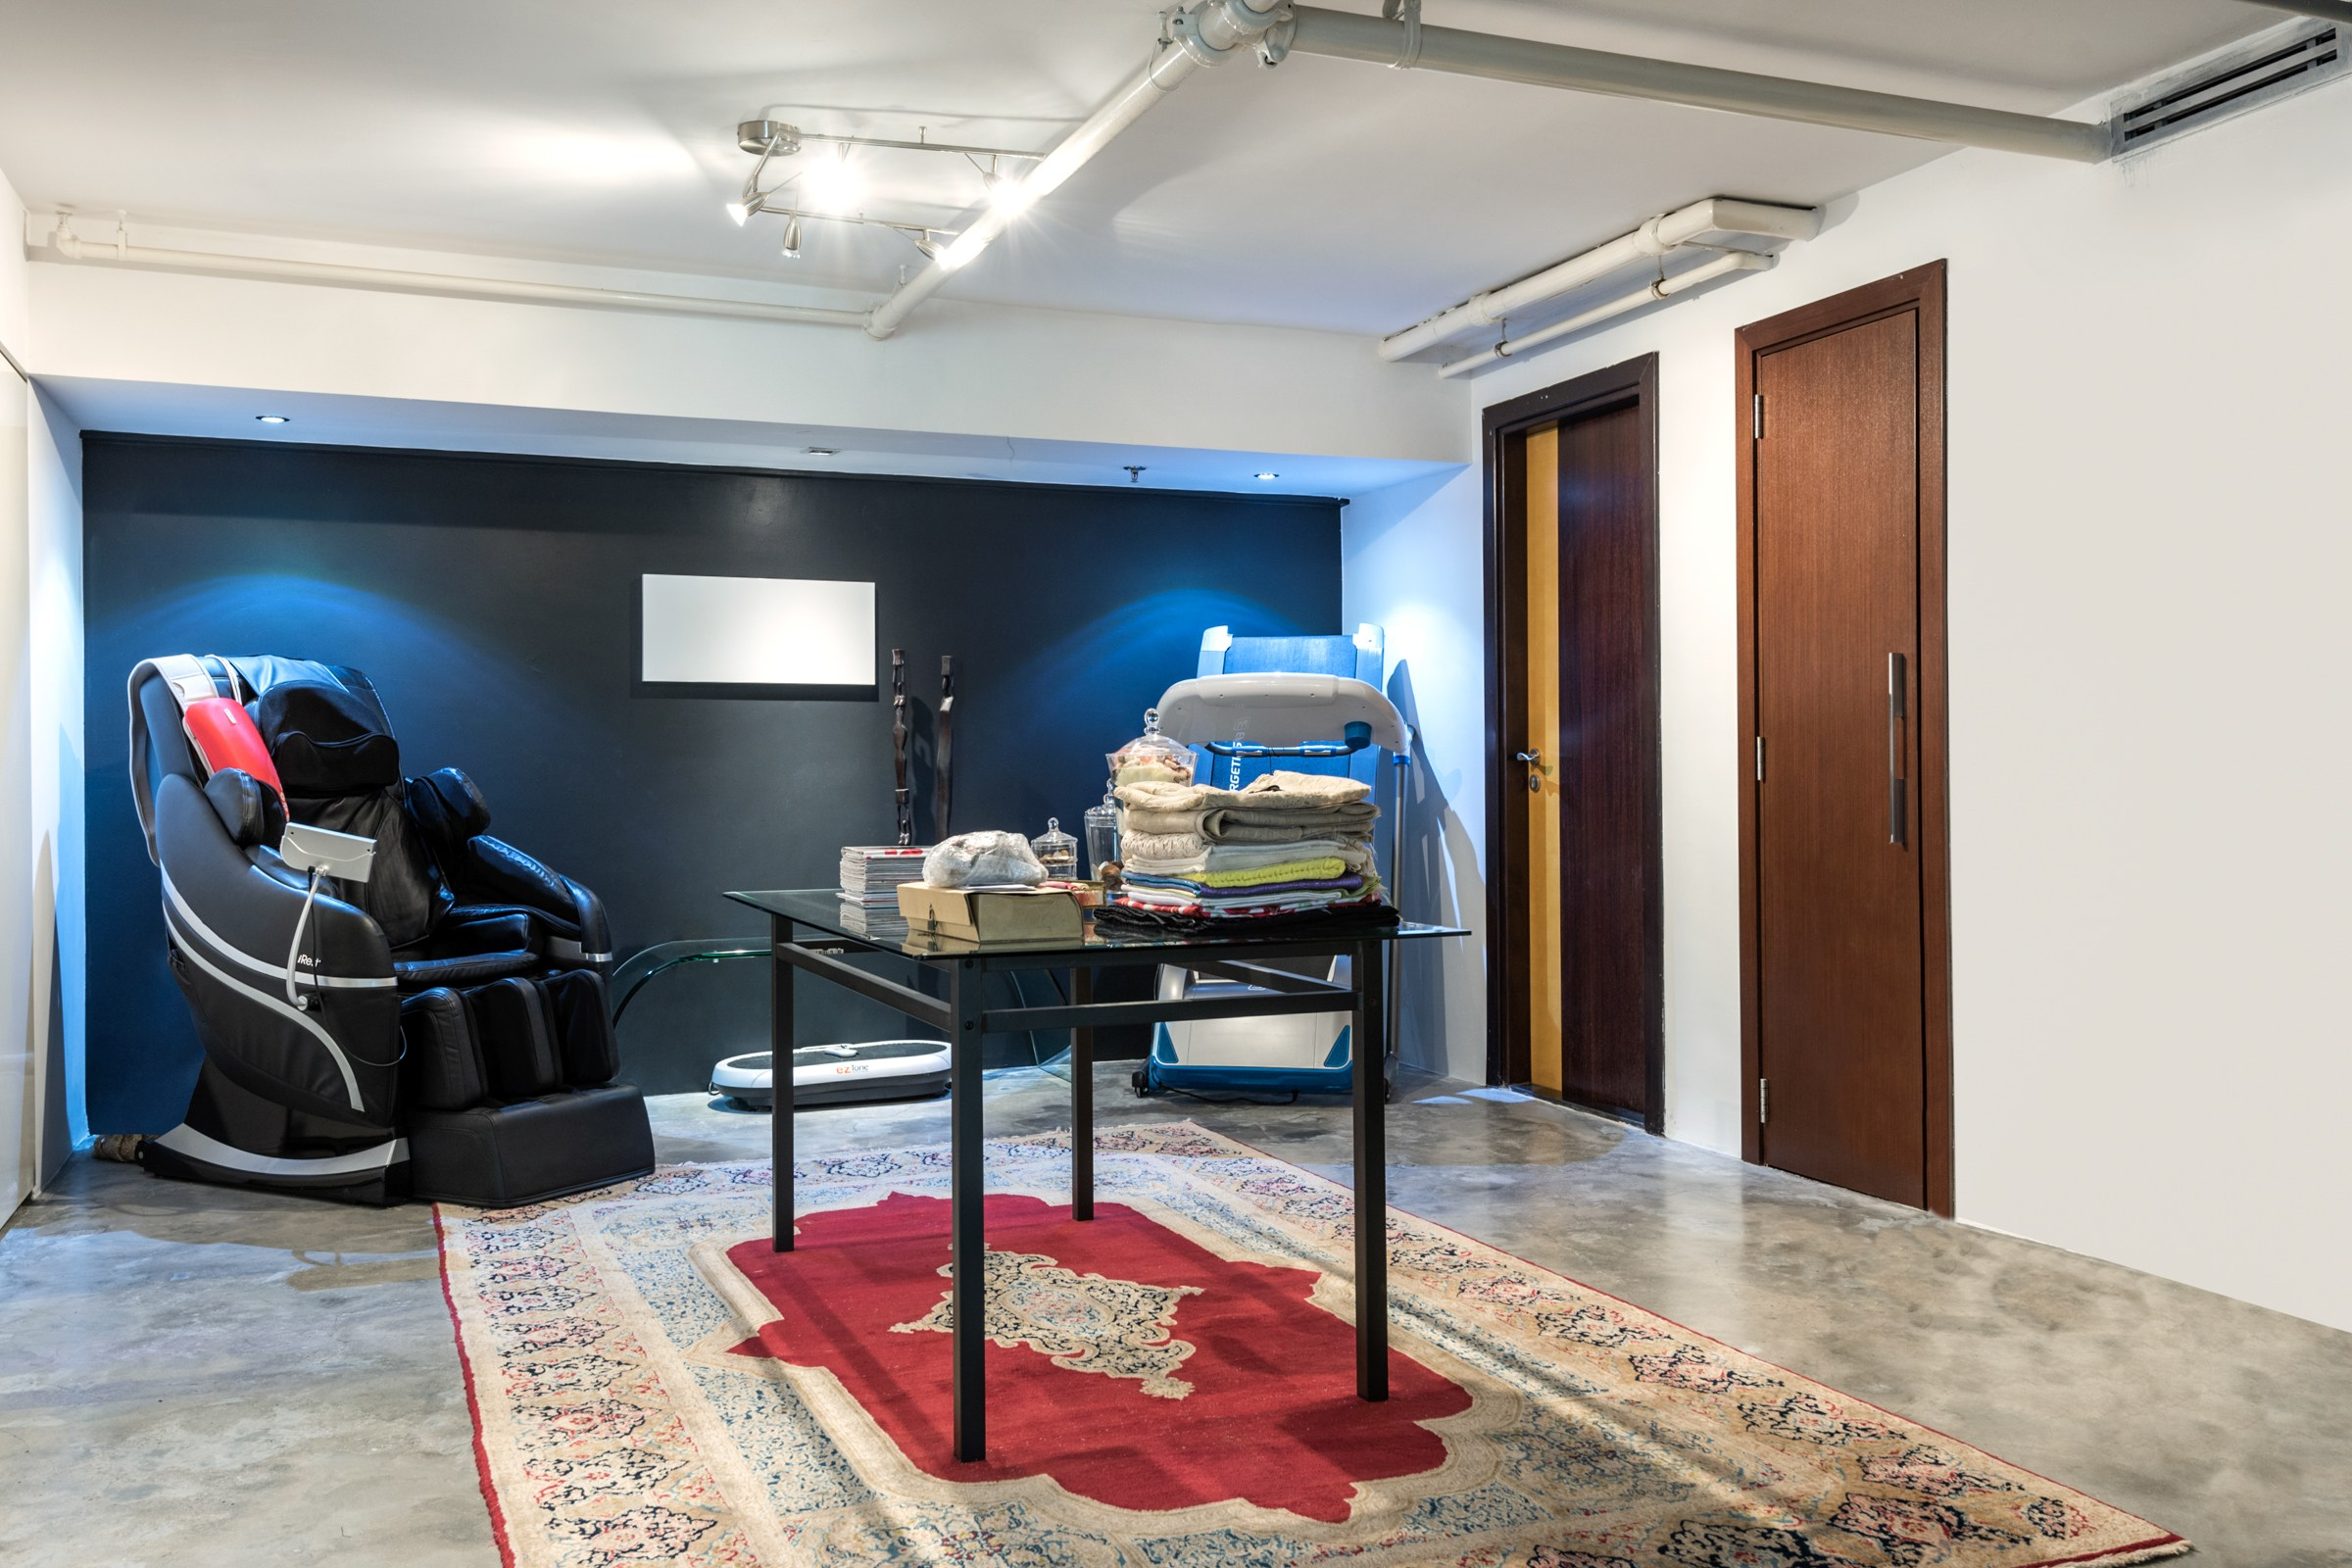 Vacant | Upgraded Loft Apartment | 2 Bed